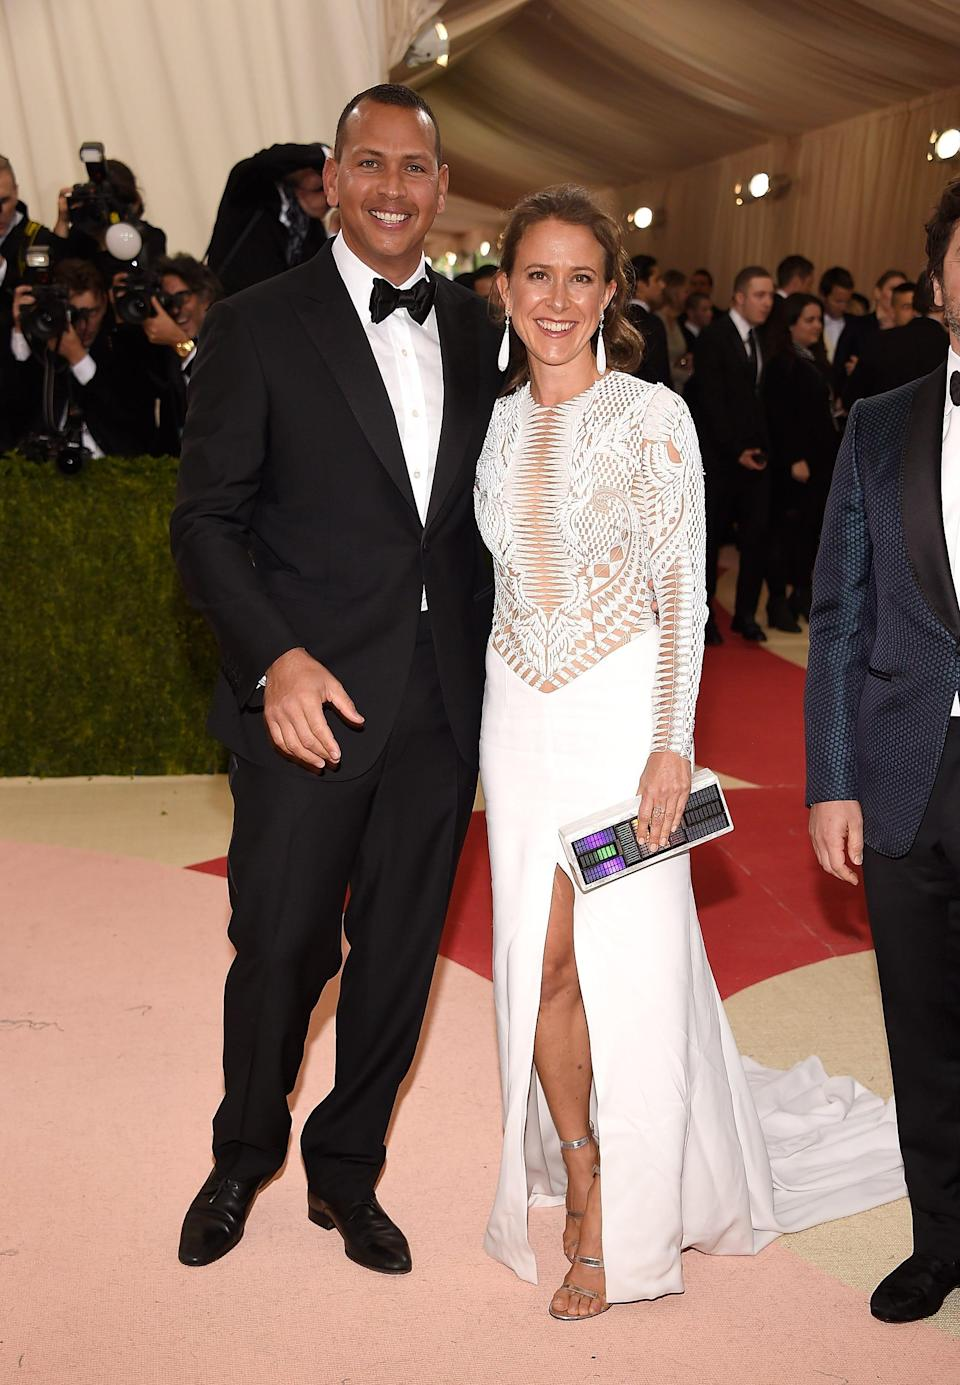 Alex Rodriguez stands in a suit and Anne Wojcicki stands in a white dress on a red carpet.